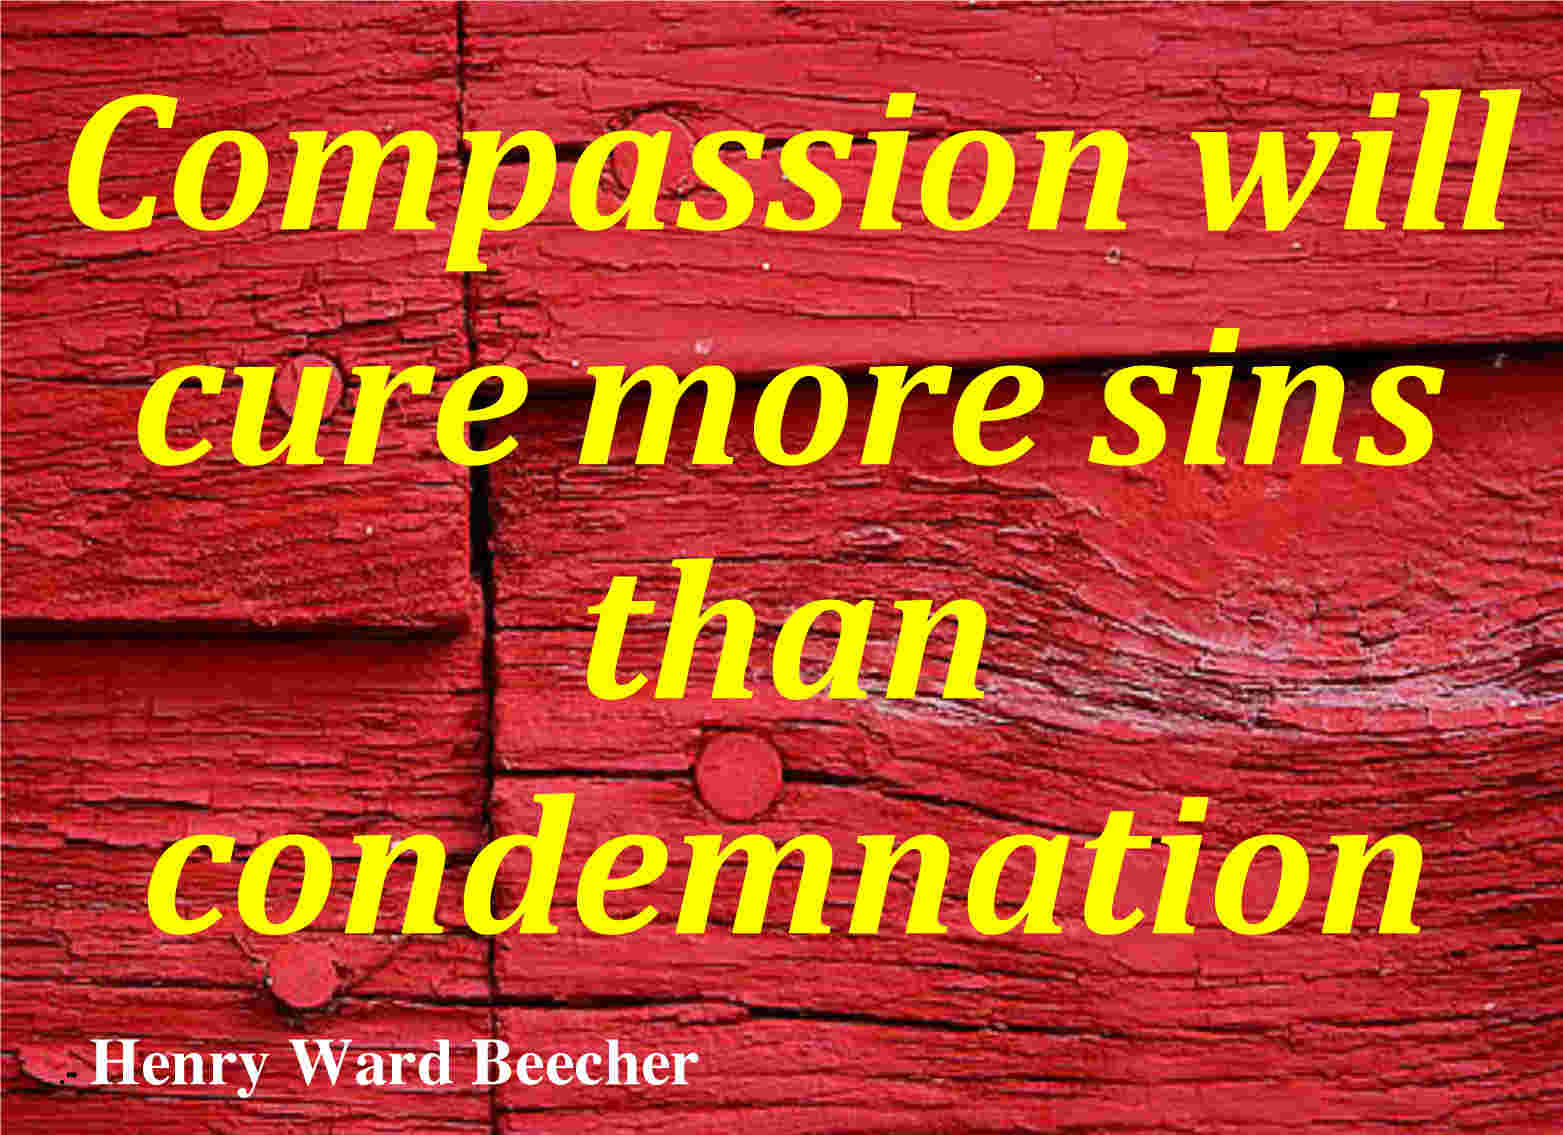 21 Inspirational Compassion Quotes